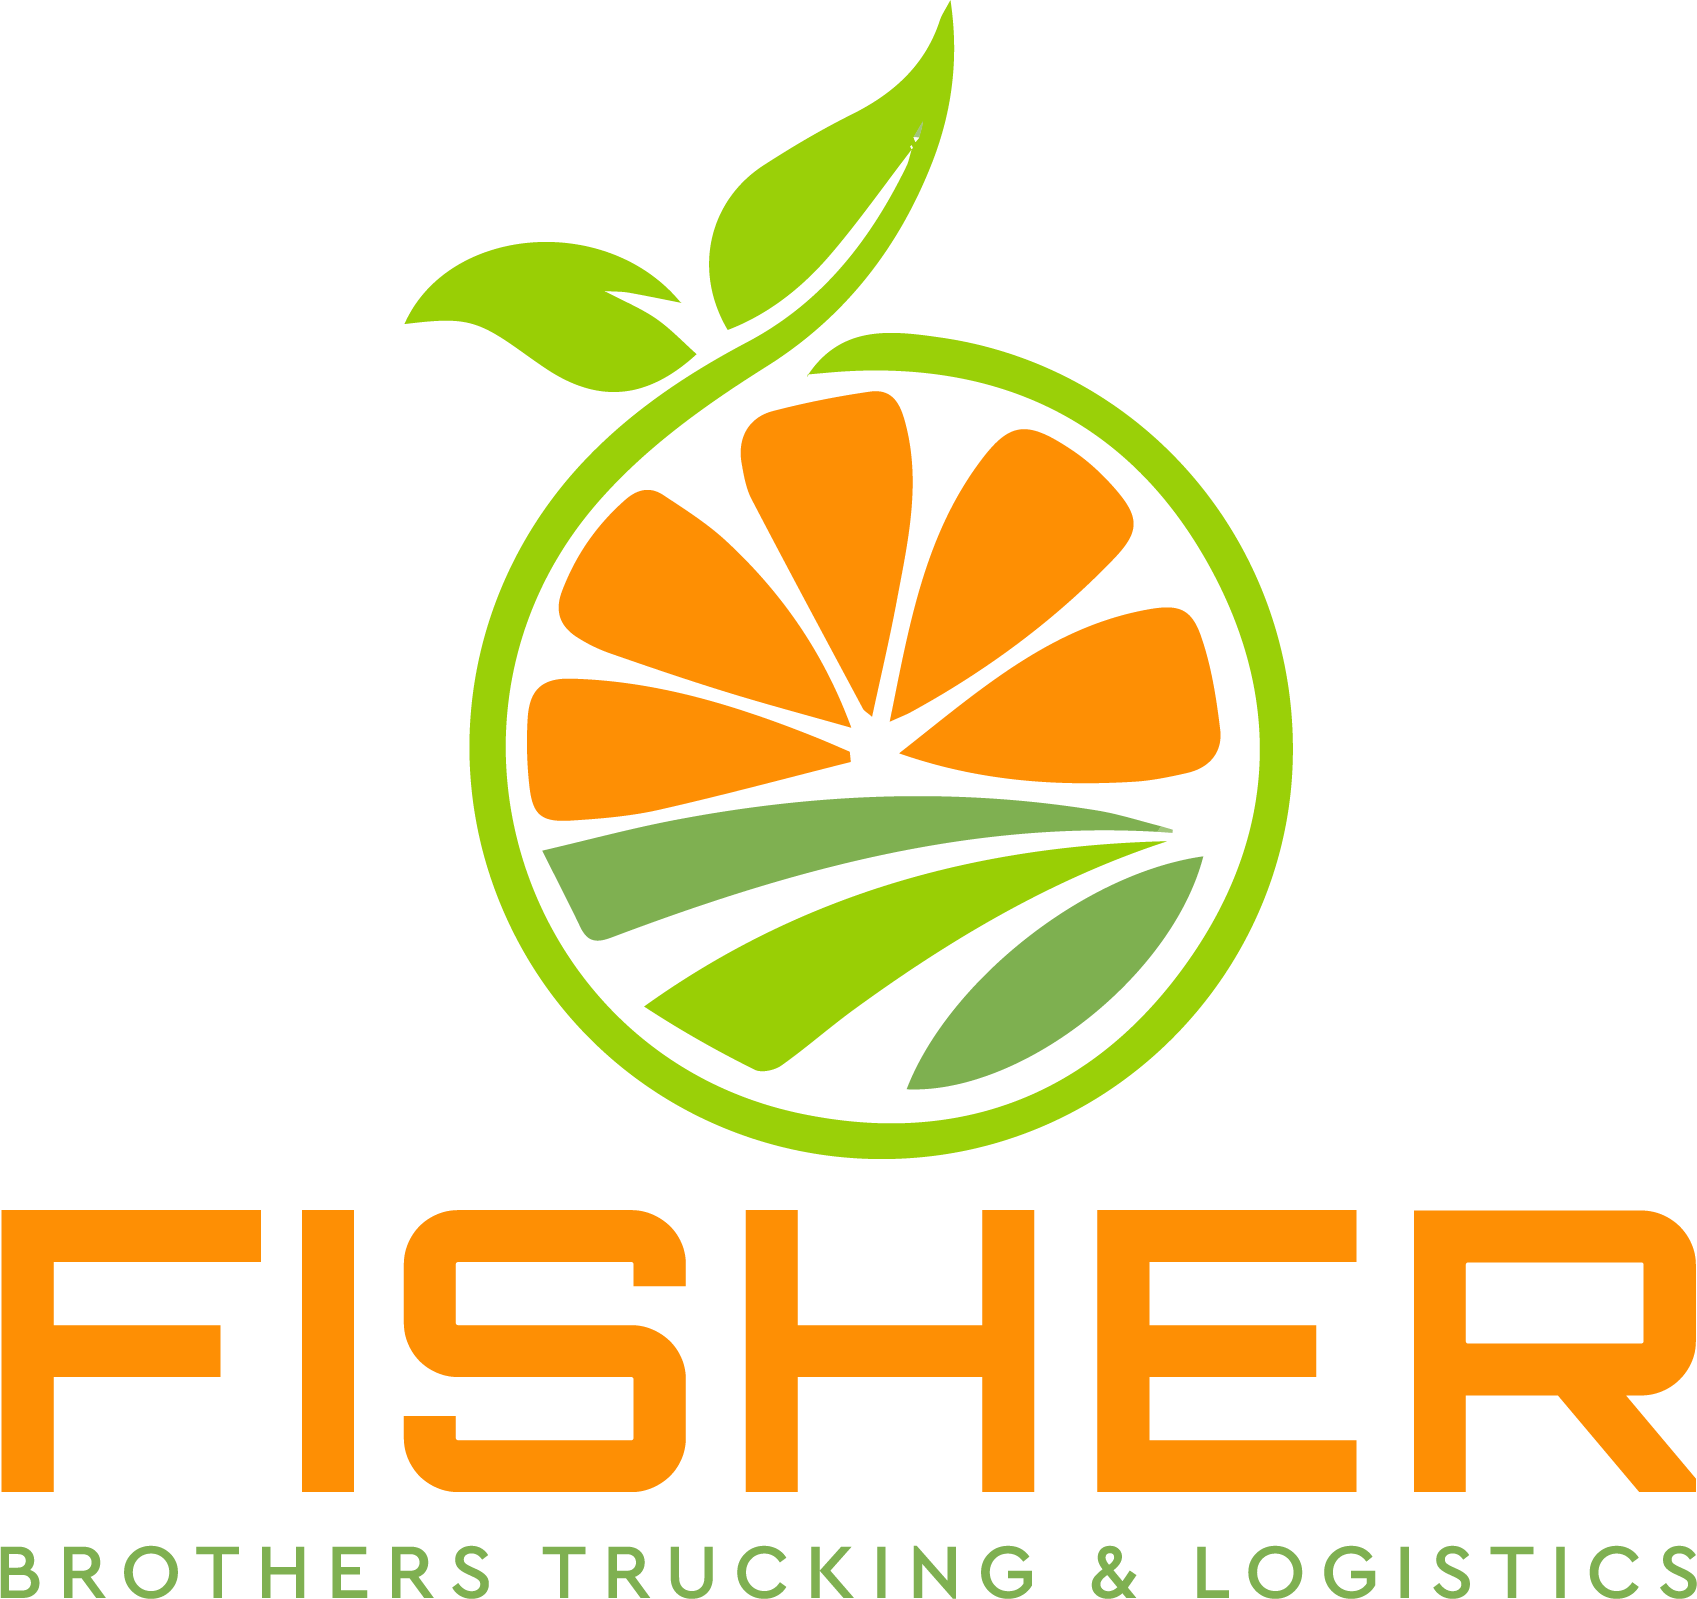 Fisher-Brothers_Logo_Stacked.png